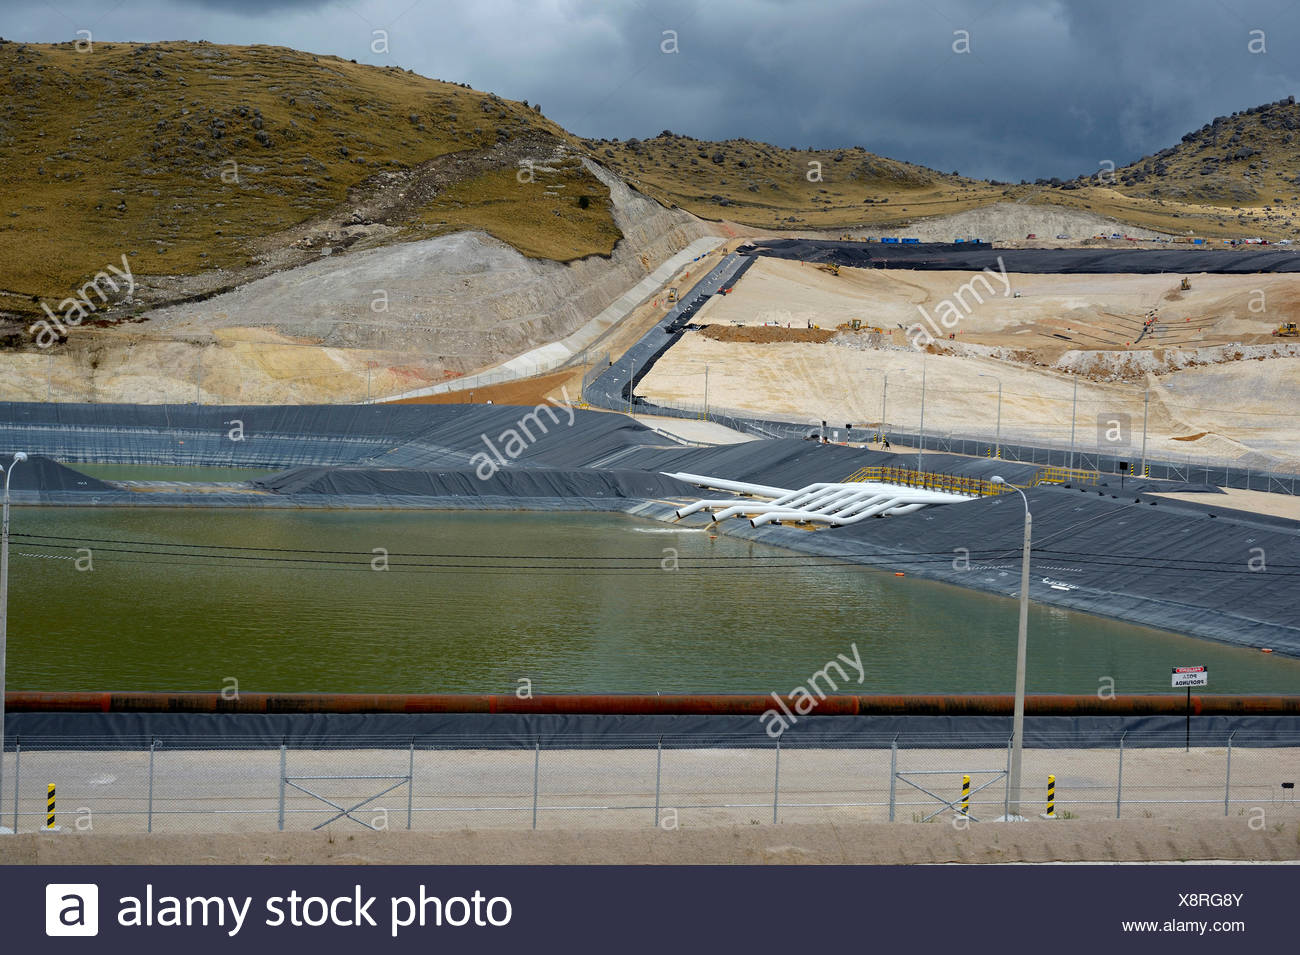 Reservoir for acidic, polluting effluents generated by the mine, Yanacocha Gold Mine, Cajamarca, Cajamarca region, Peru - Stock Image